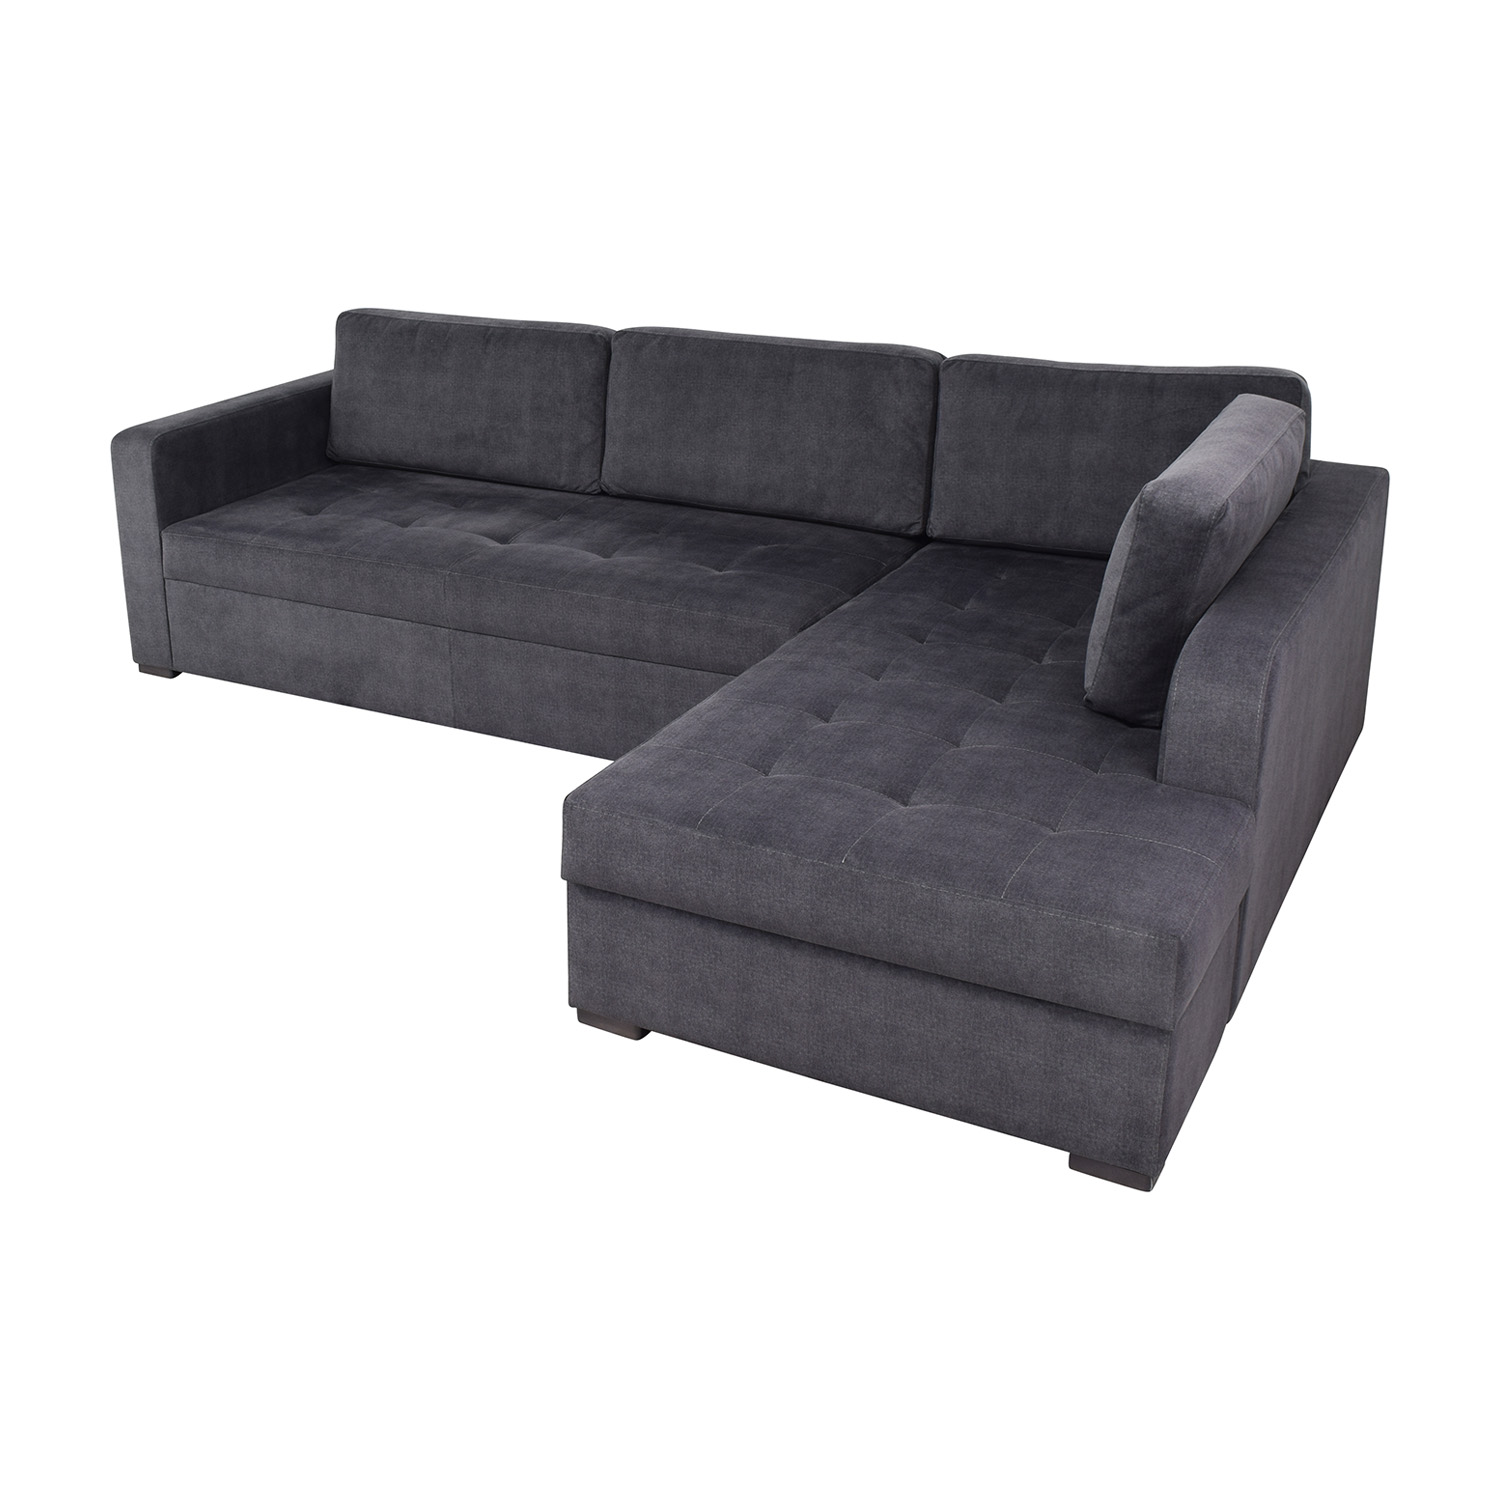 66% OFF - Lazzoni Lazzoni Vetro Chaise Sleeper Sofa with Storage / Sofas